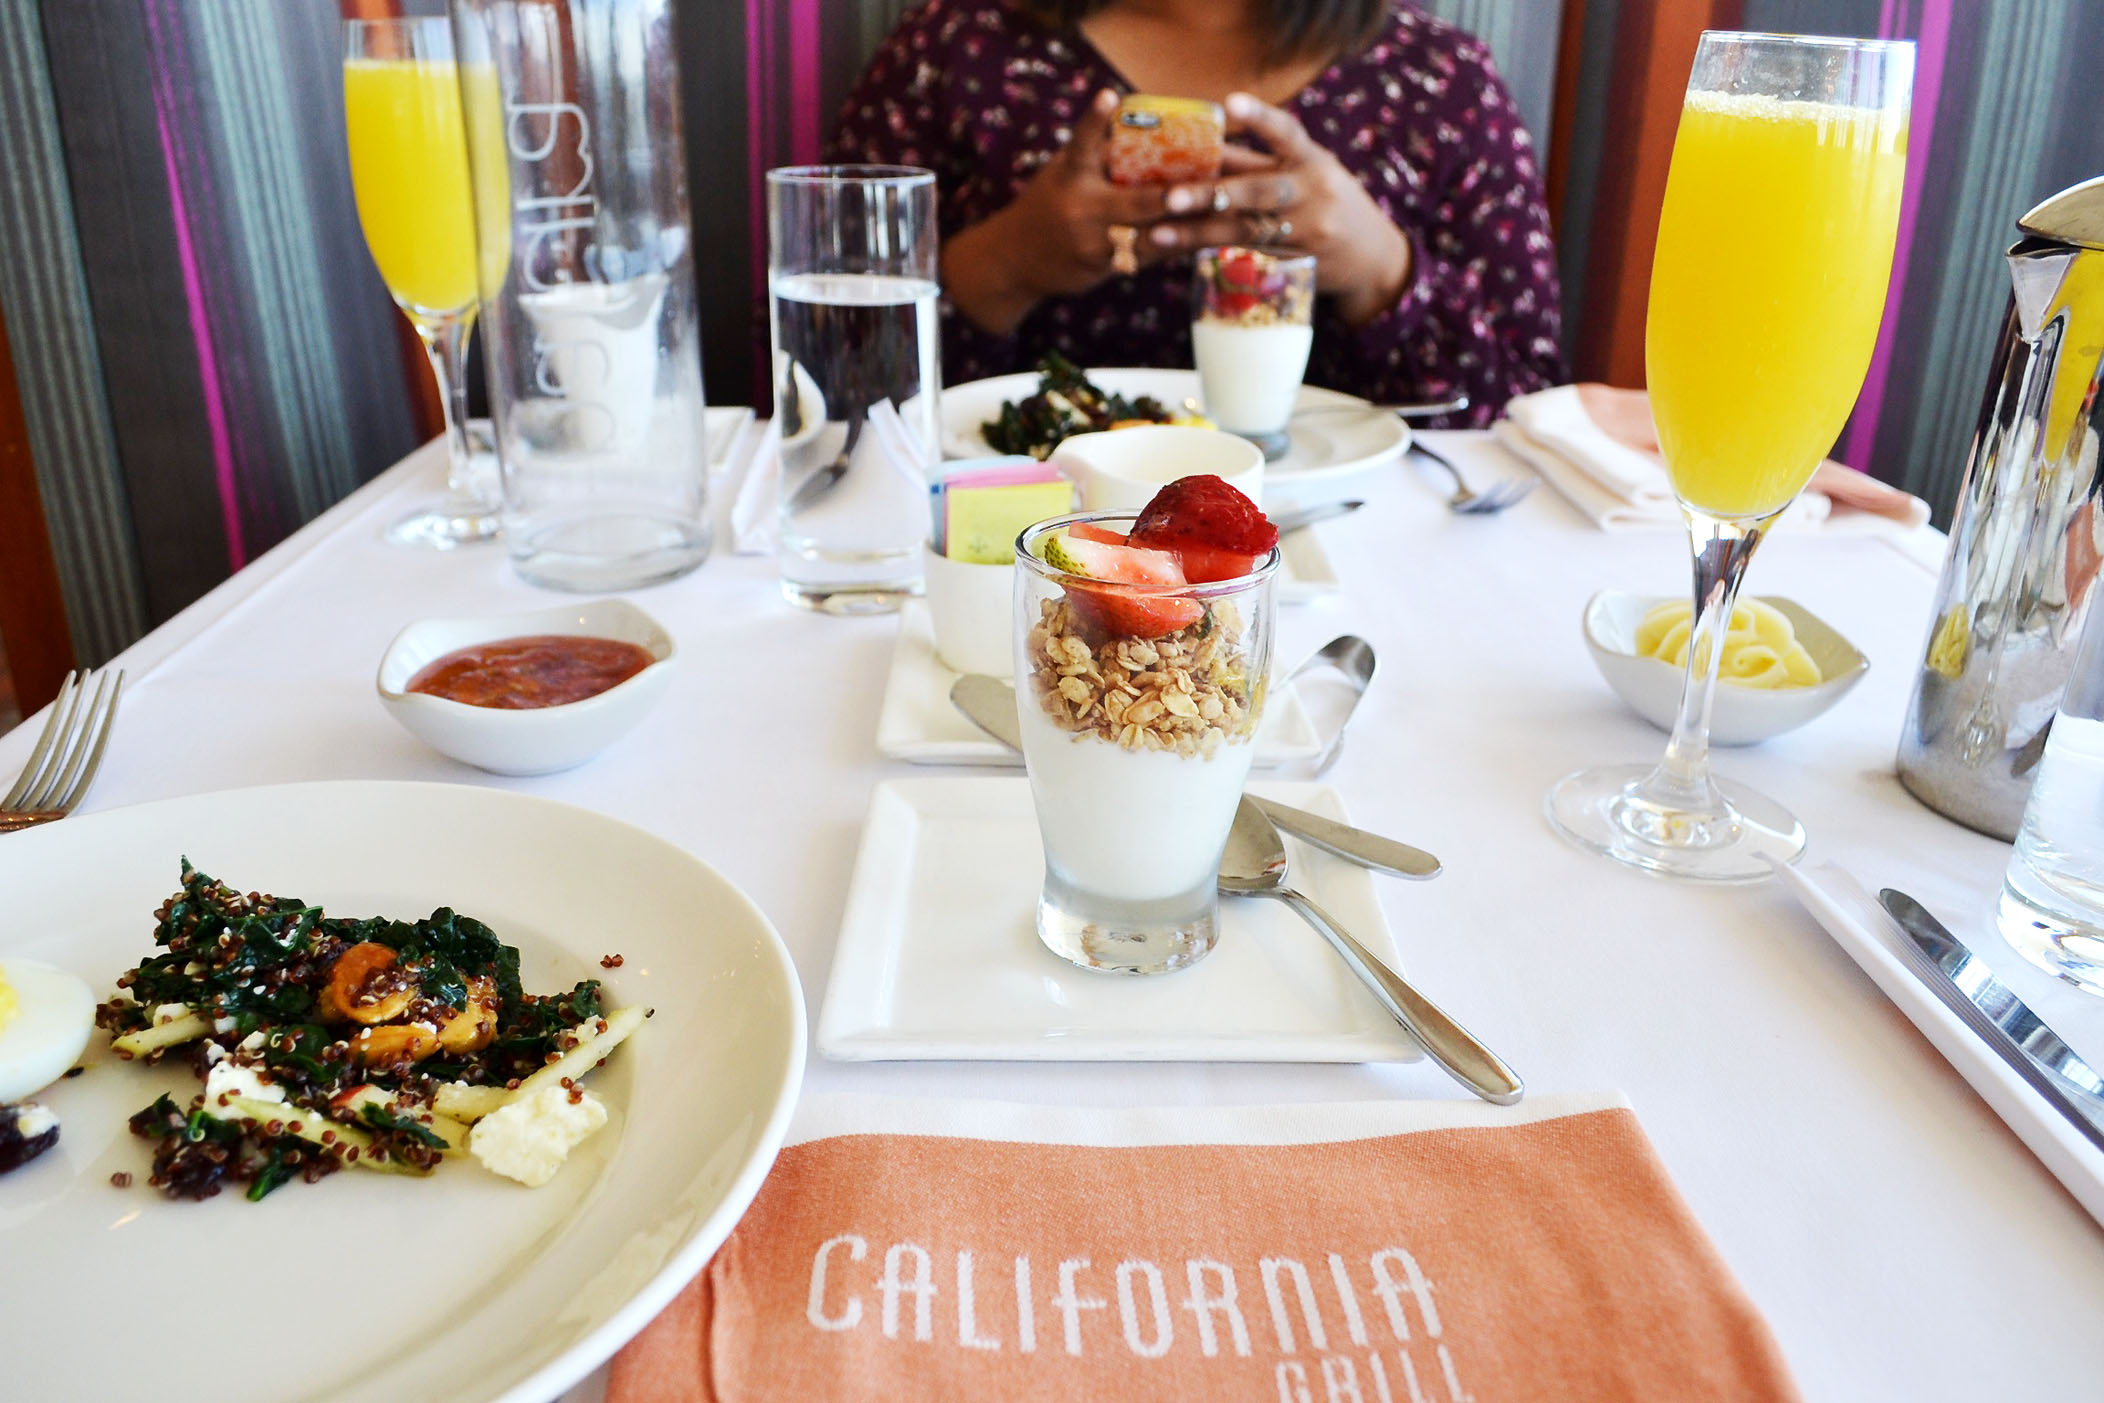 Brunch at the Top (California Grill) Review